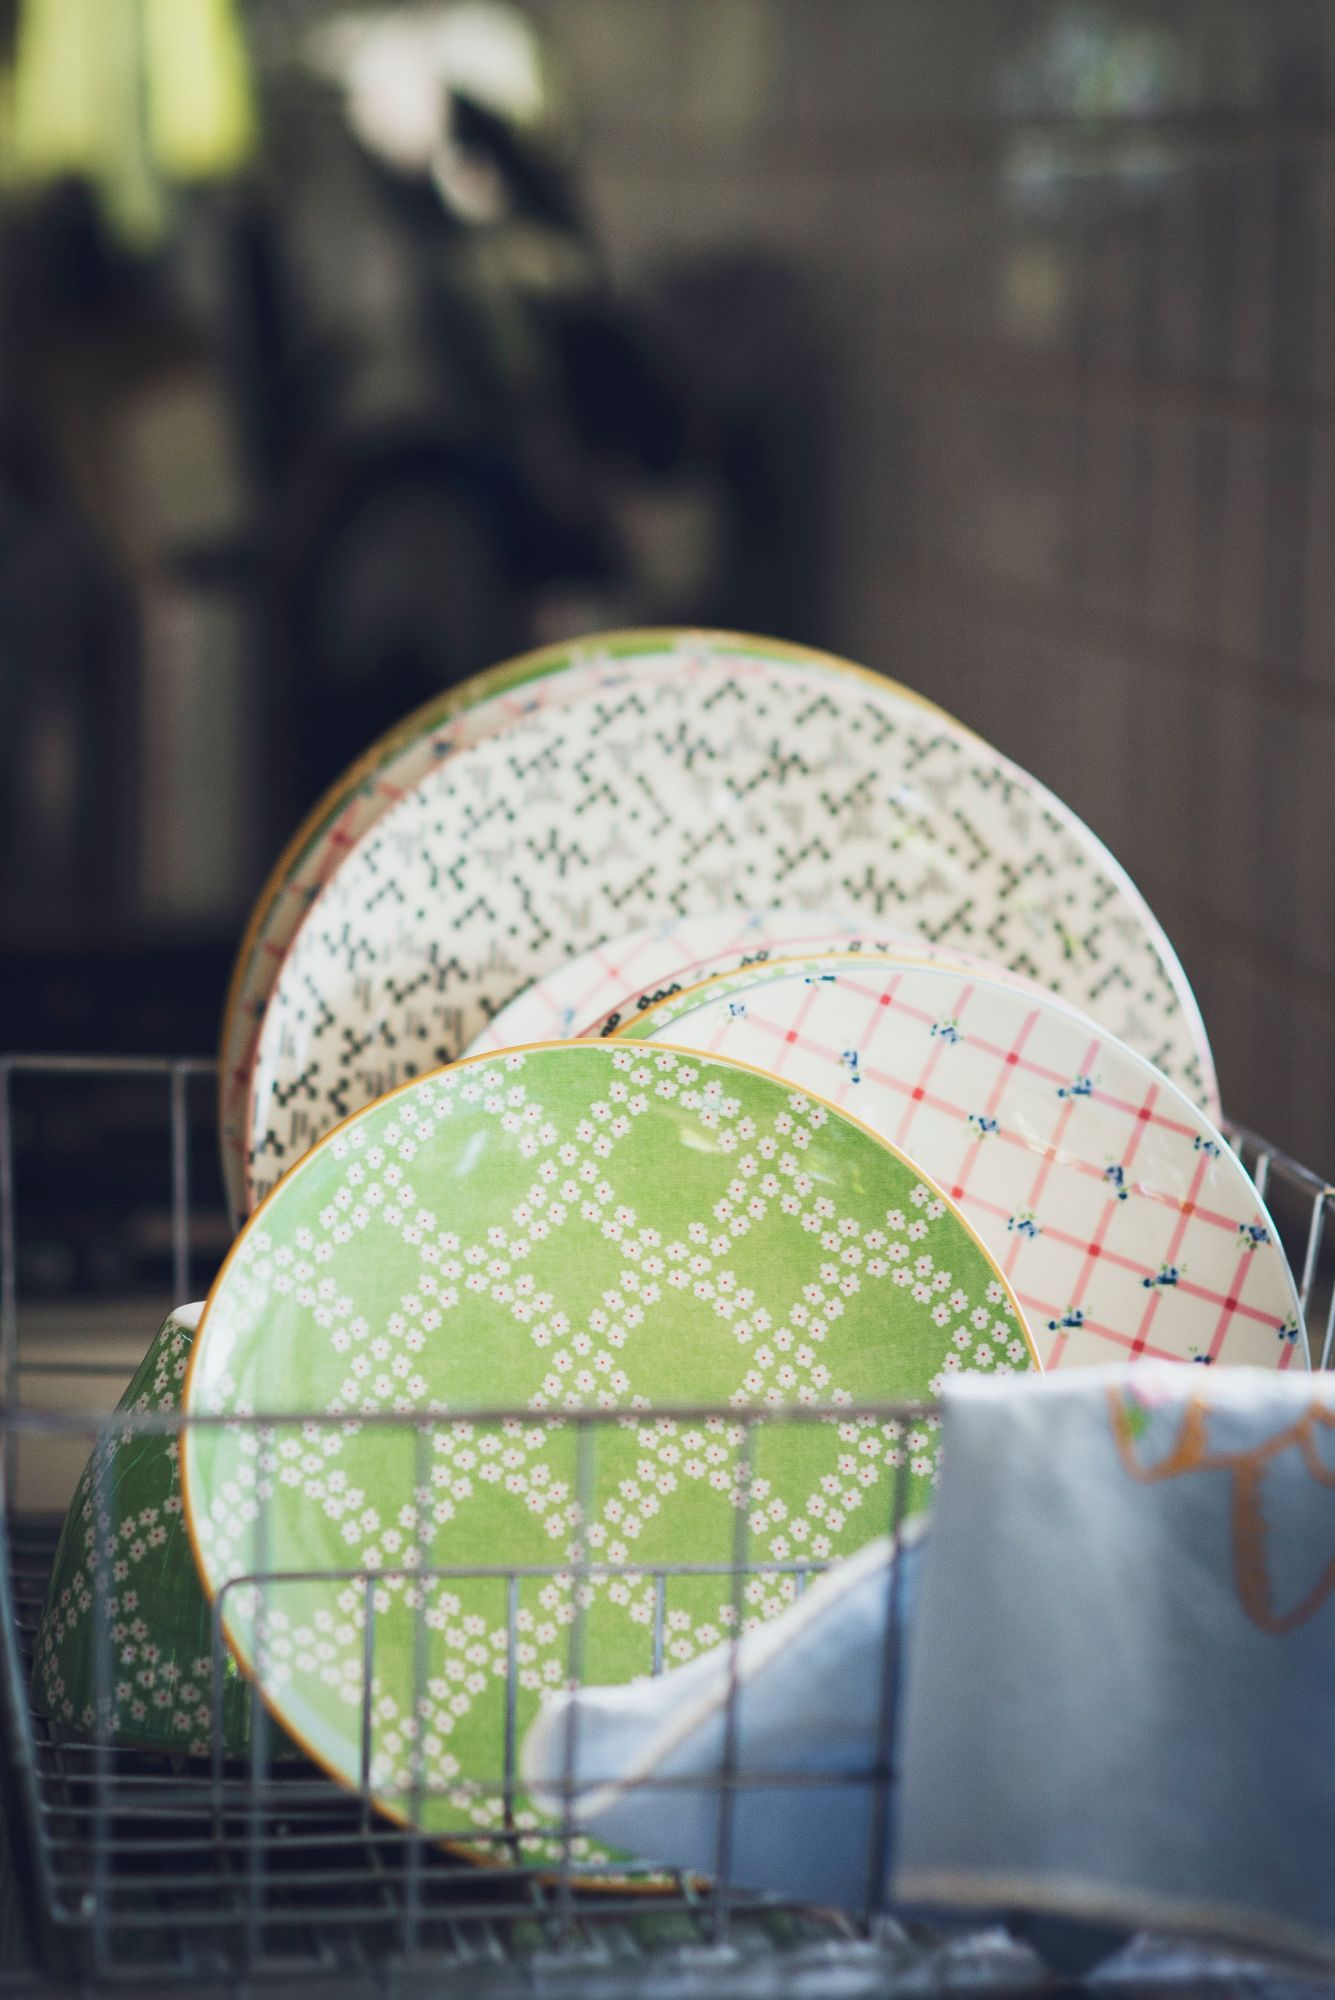 Plates on a drying rack in a kitchen